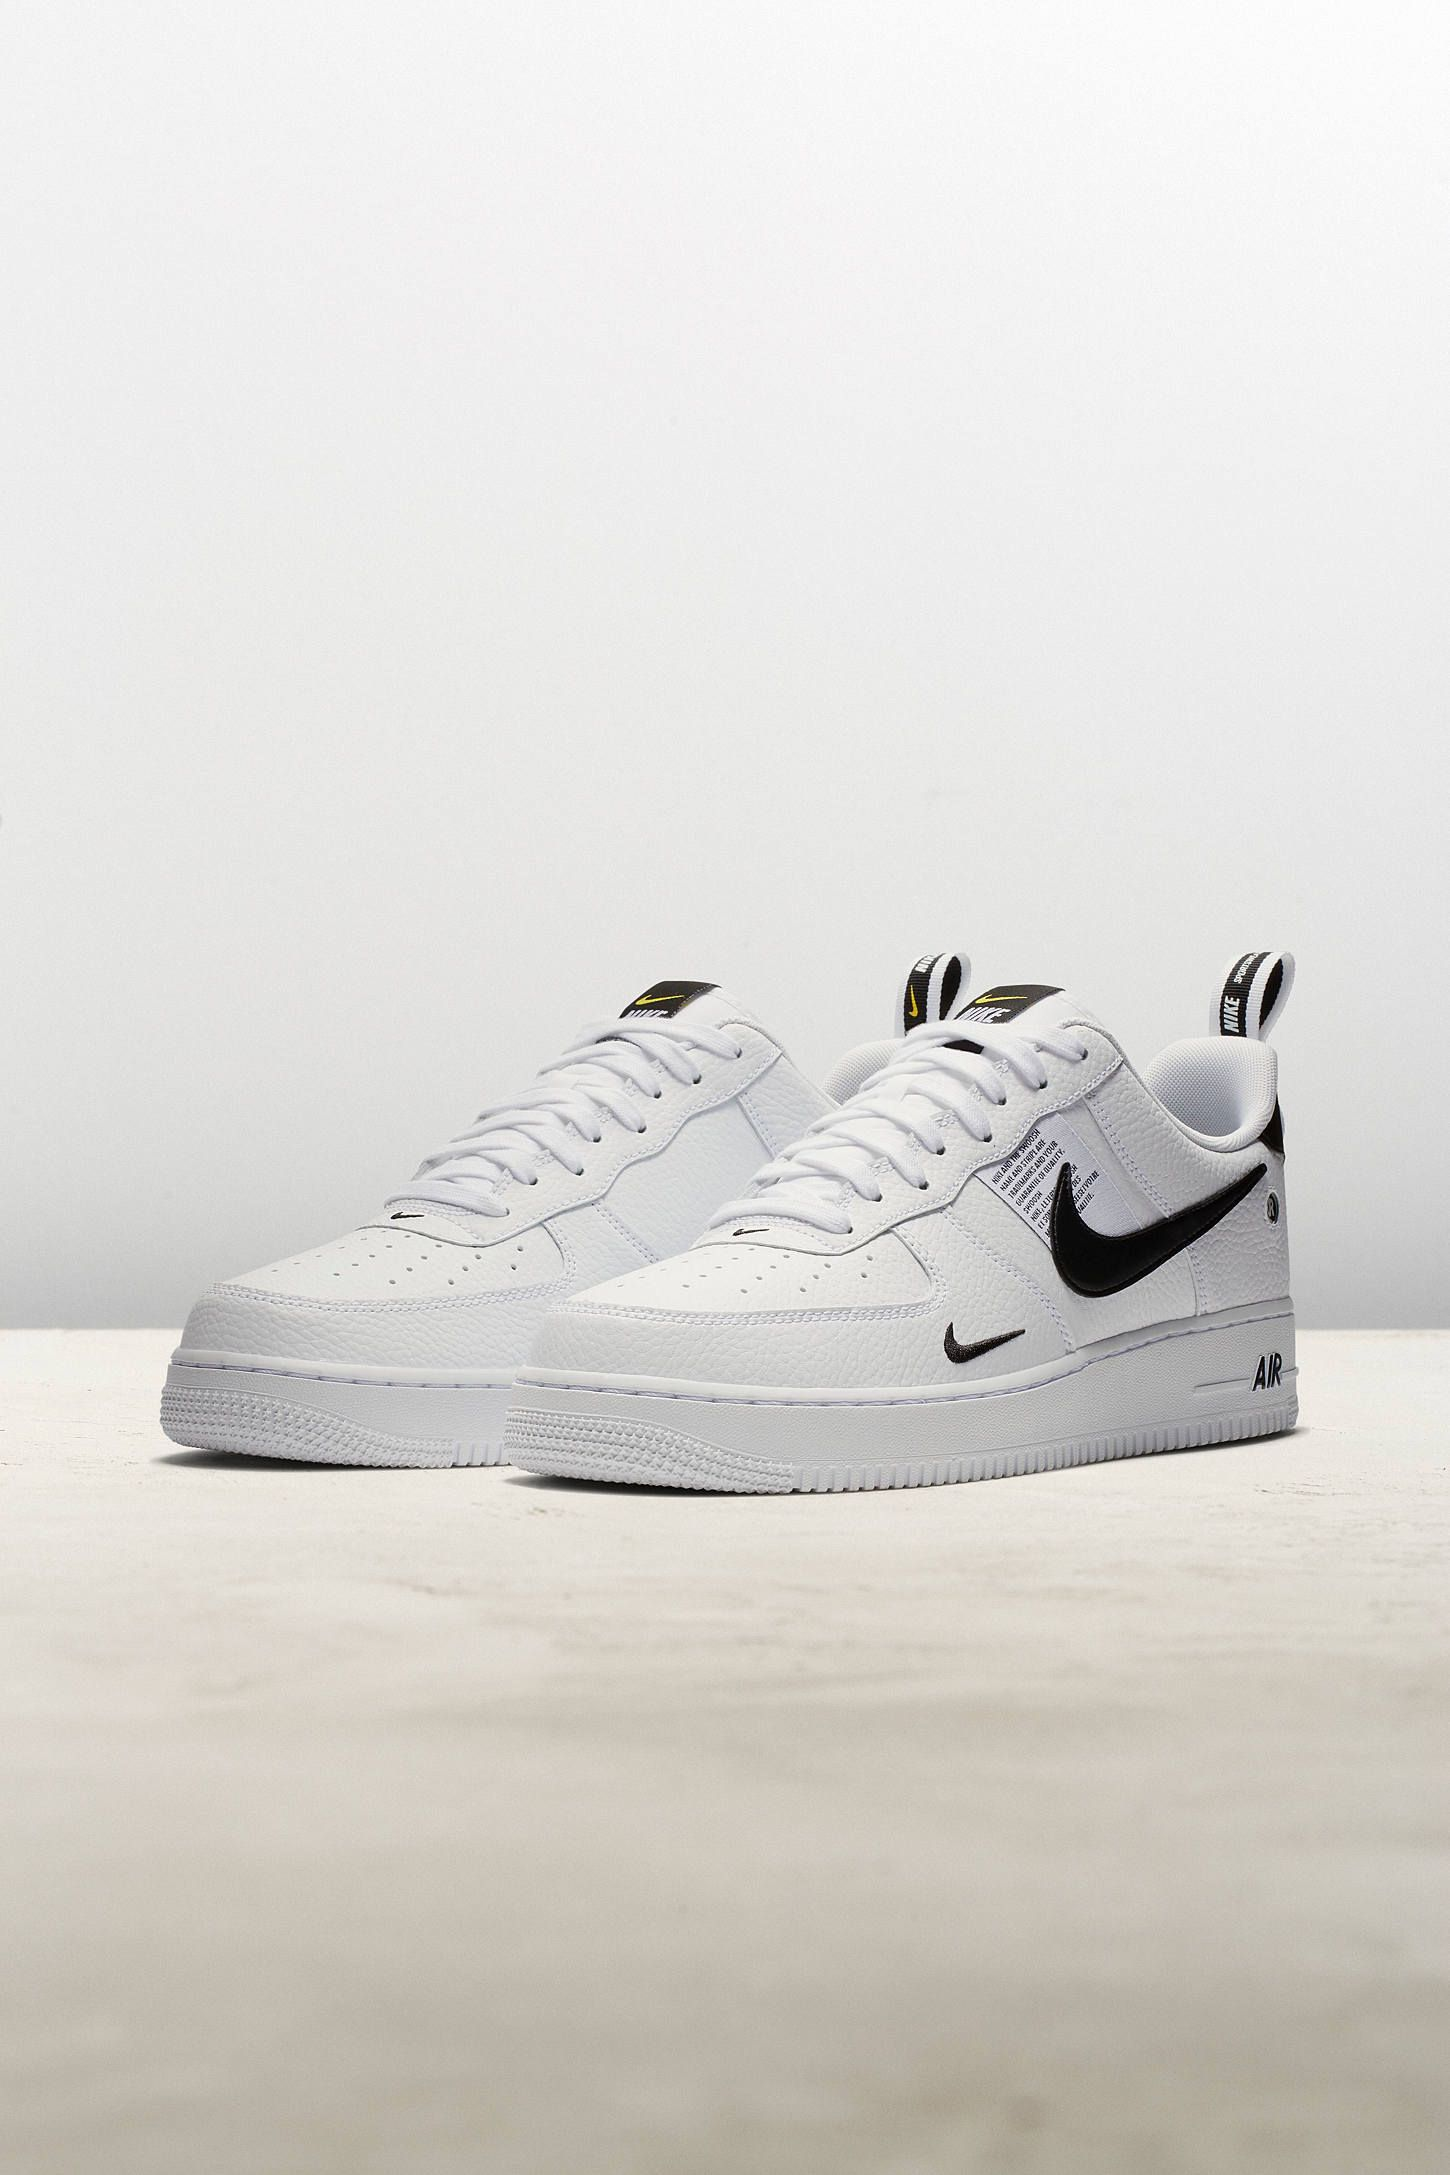 Nike Air Force 1 07 Lv8 Utility Sneaker Nike Air Force White Nike Shoes Air Force Nike Air Force 1 Outfit